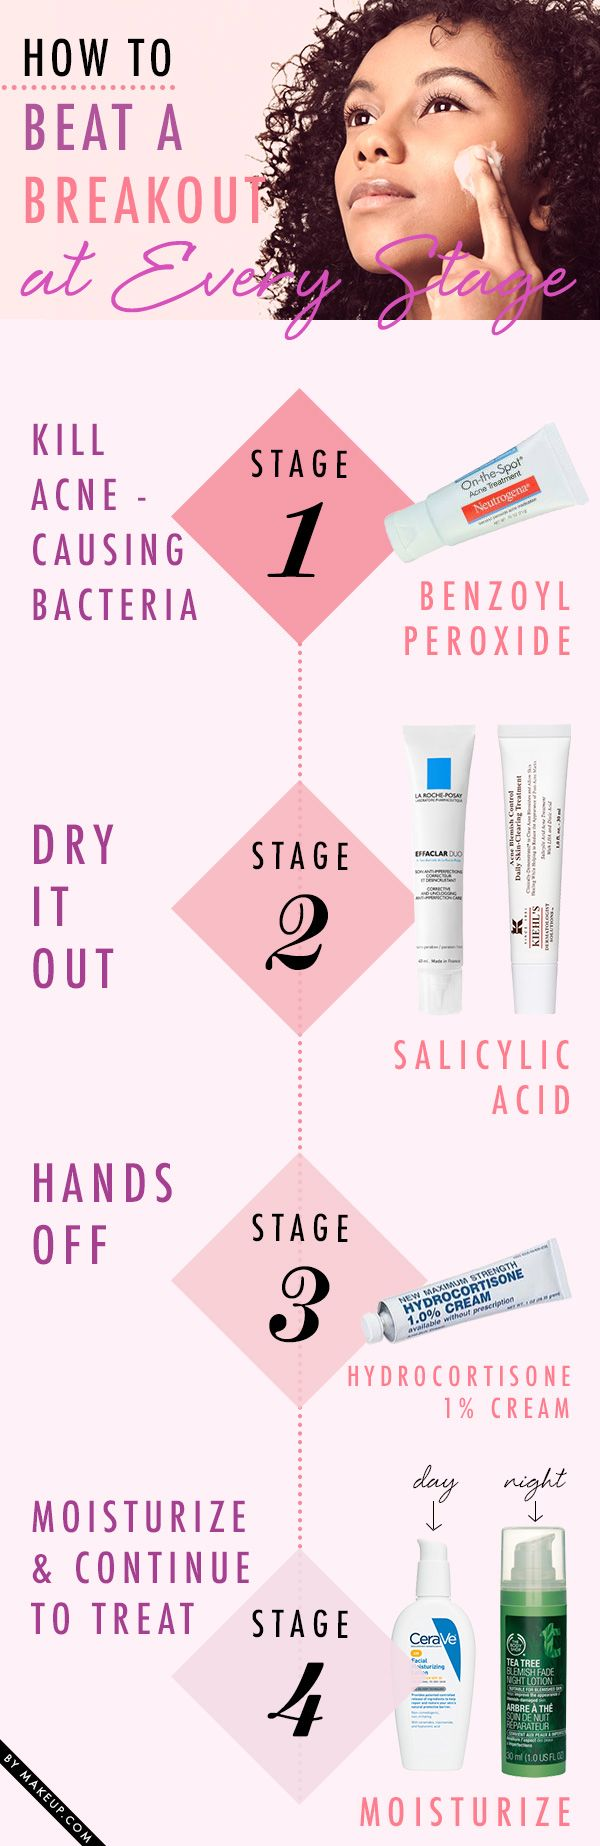 We know you're busy, and combatting acne isn't something you want to spend all you're time doing. Depending on when you first detect the pesky pimple, you could be looking at preventative measures or a full force fight against the little sucker. Here's how to beat a breakout at every stage.